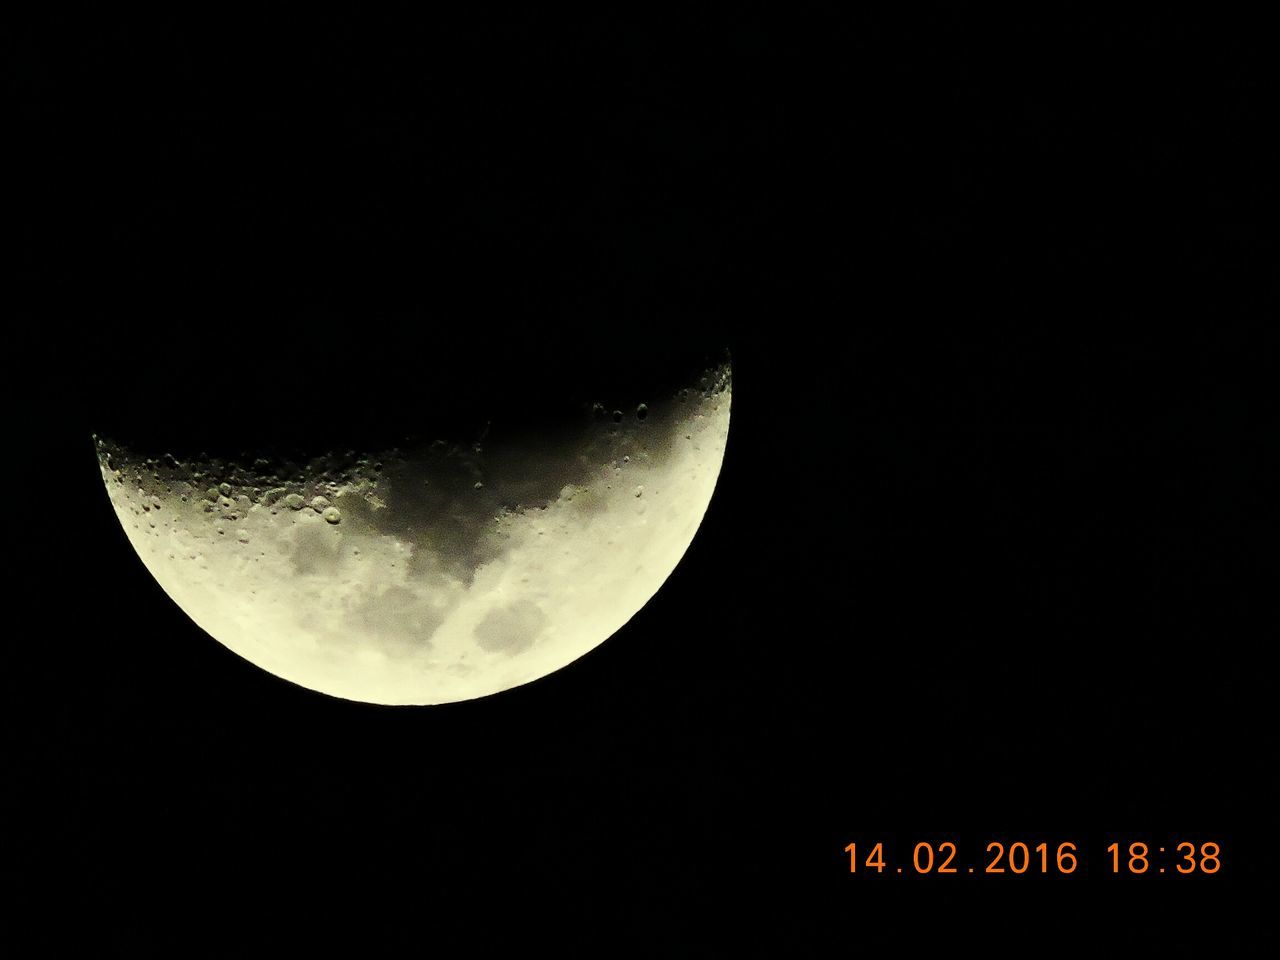 moon, night, astronomy, copy space, beauty in nature, planetary moon, low angle view, nature, moon surface, half moon, scenics, sky, tranquility, outdoors, clear sky, no people, illuminated, crescent, close-up